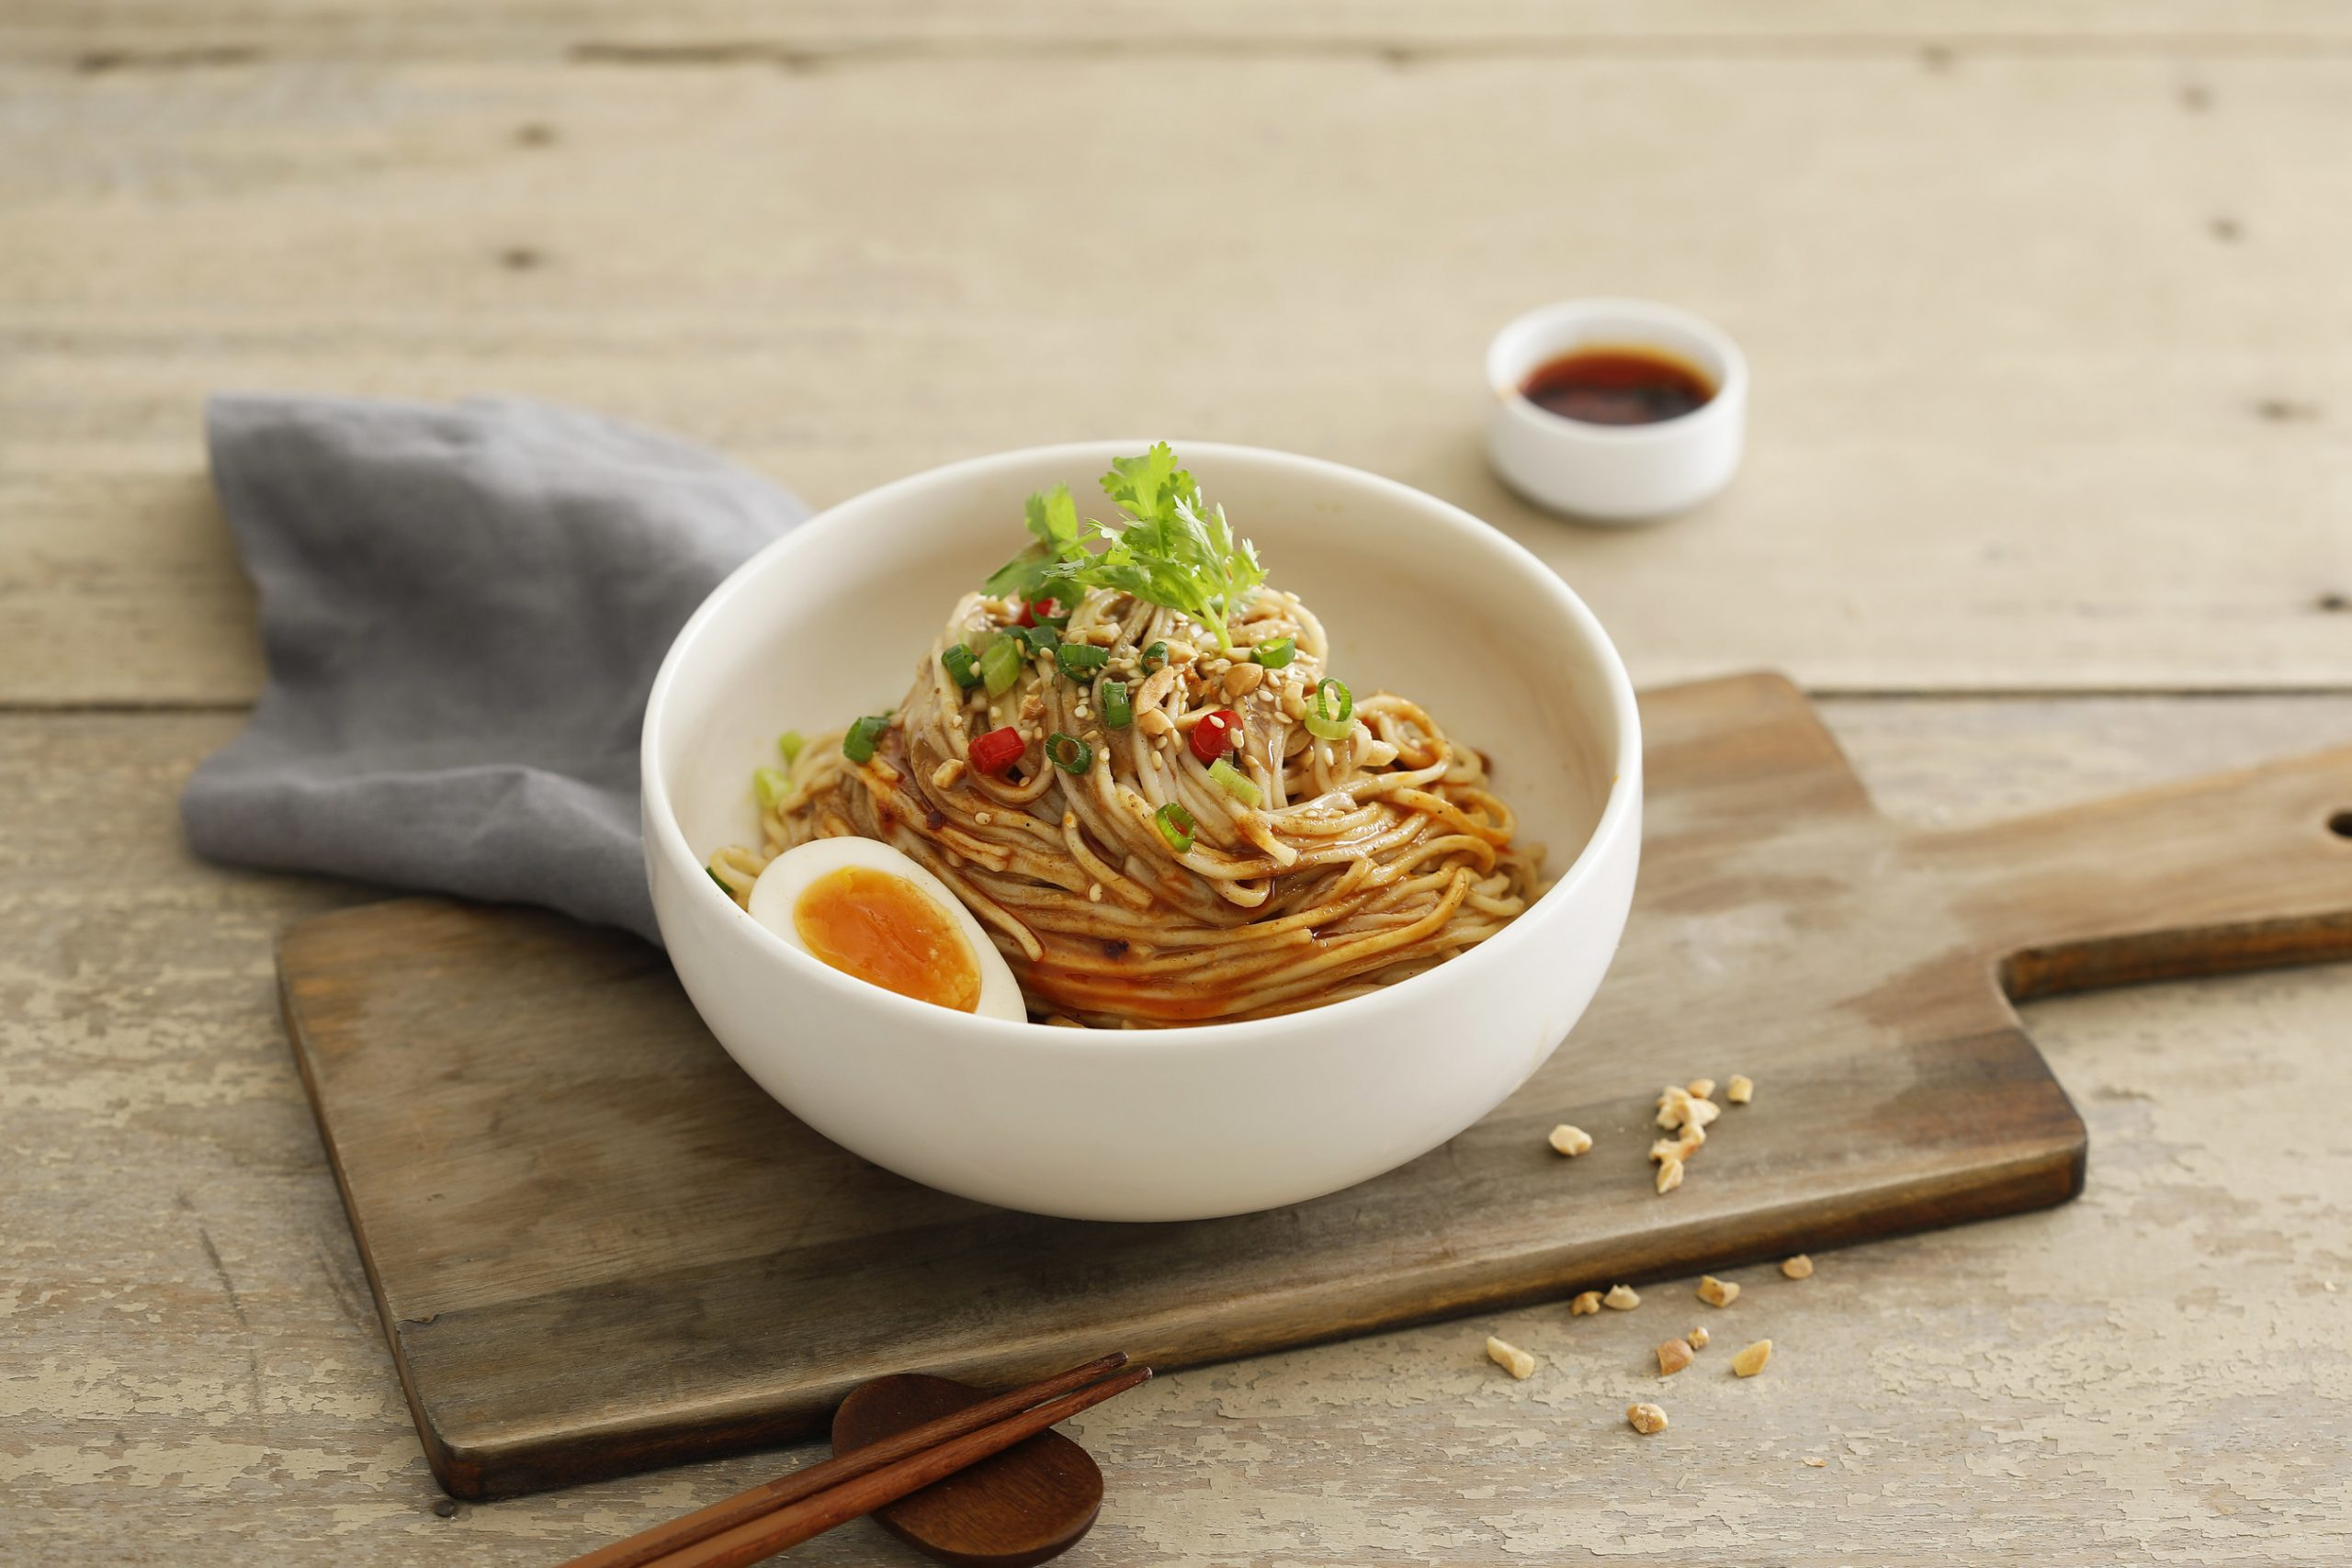 Moms Dry Noodle - Spicy Oil Dan Dan Noodles